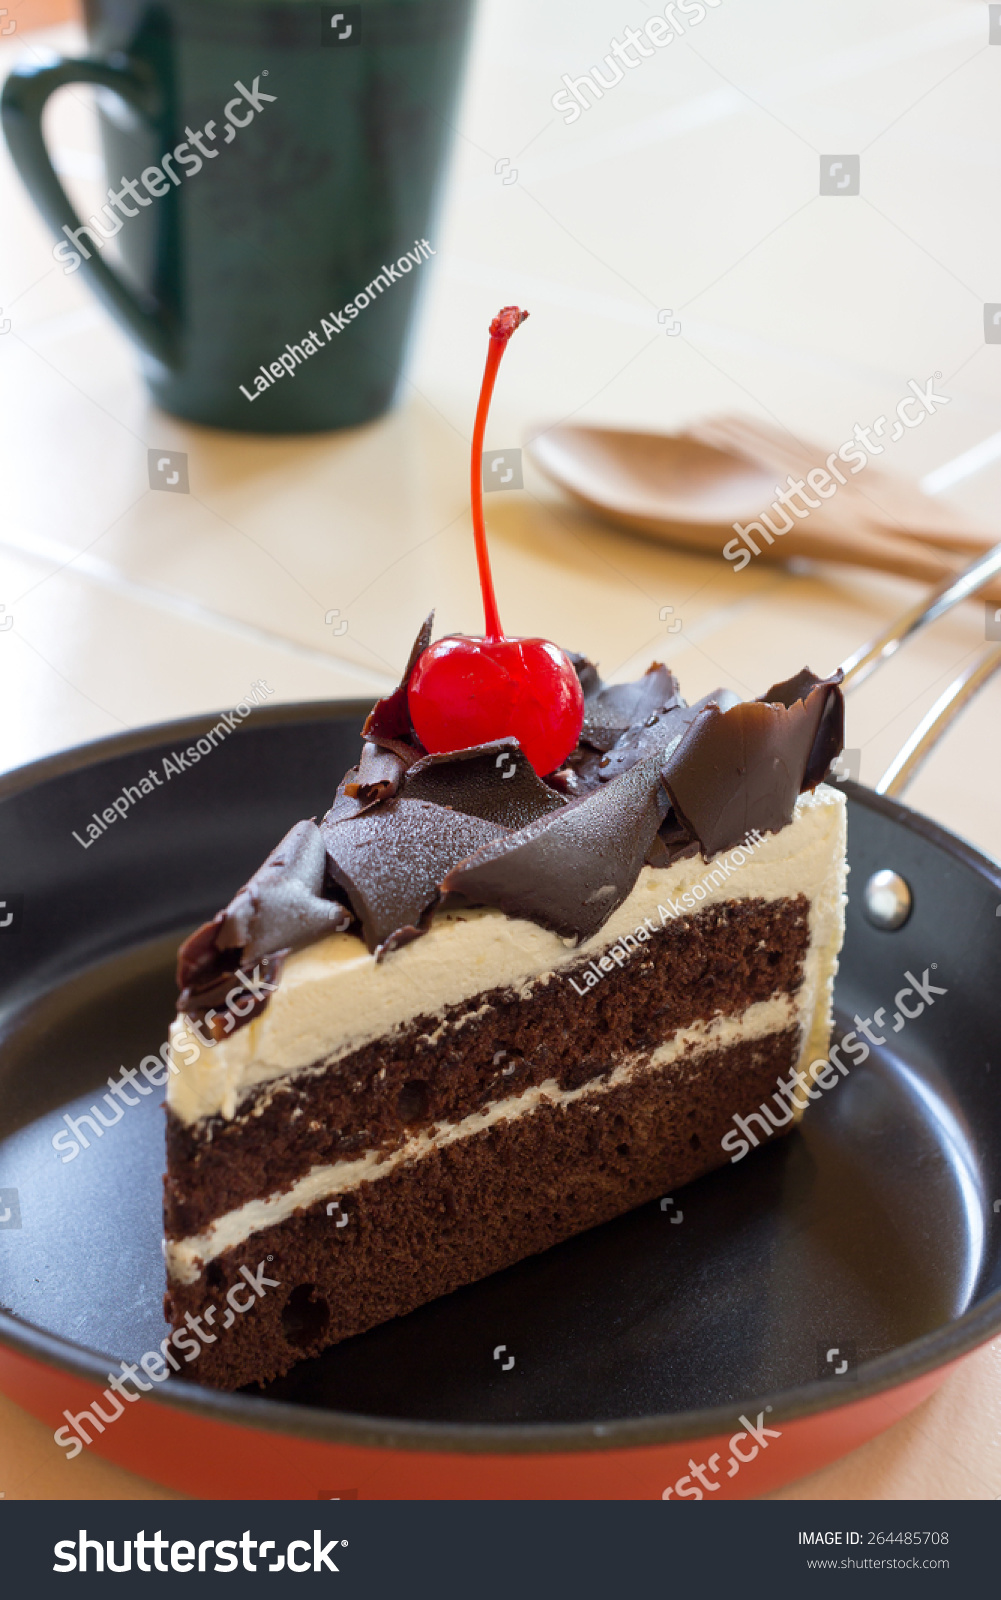 Delicious Slice Chocolate Cake With Cherry On Top Stock Photo ...